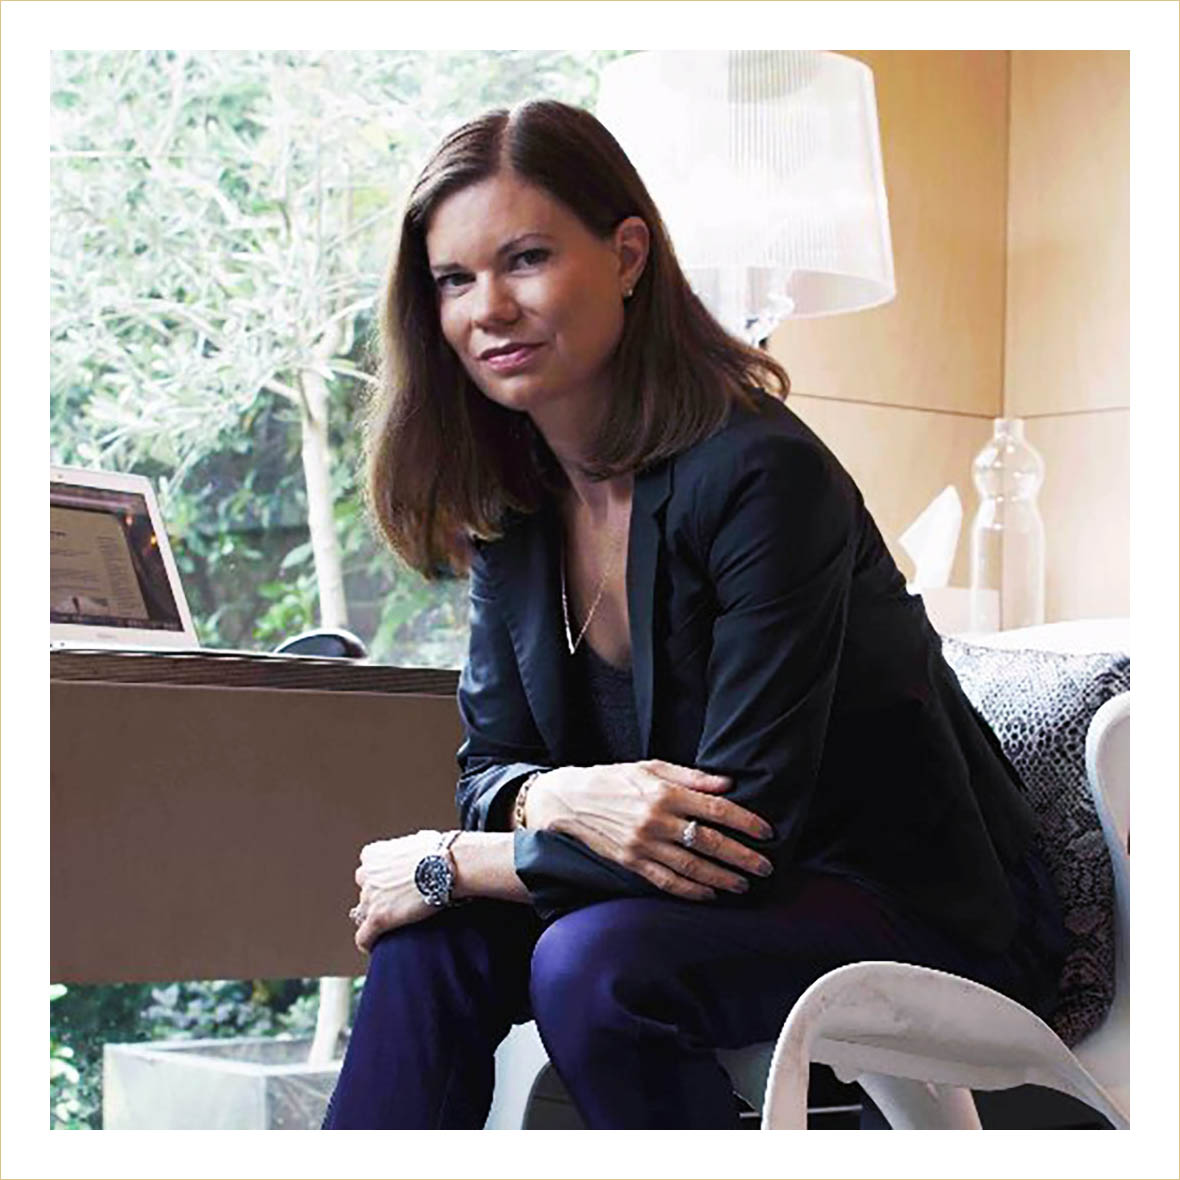 Dr Lisa Orban - Clinical Psychologist & Personal Branding Consultant